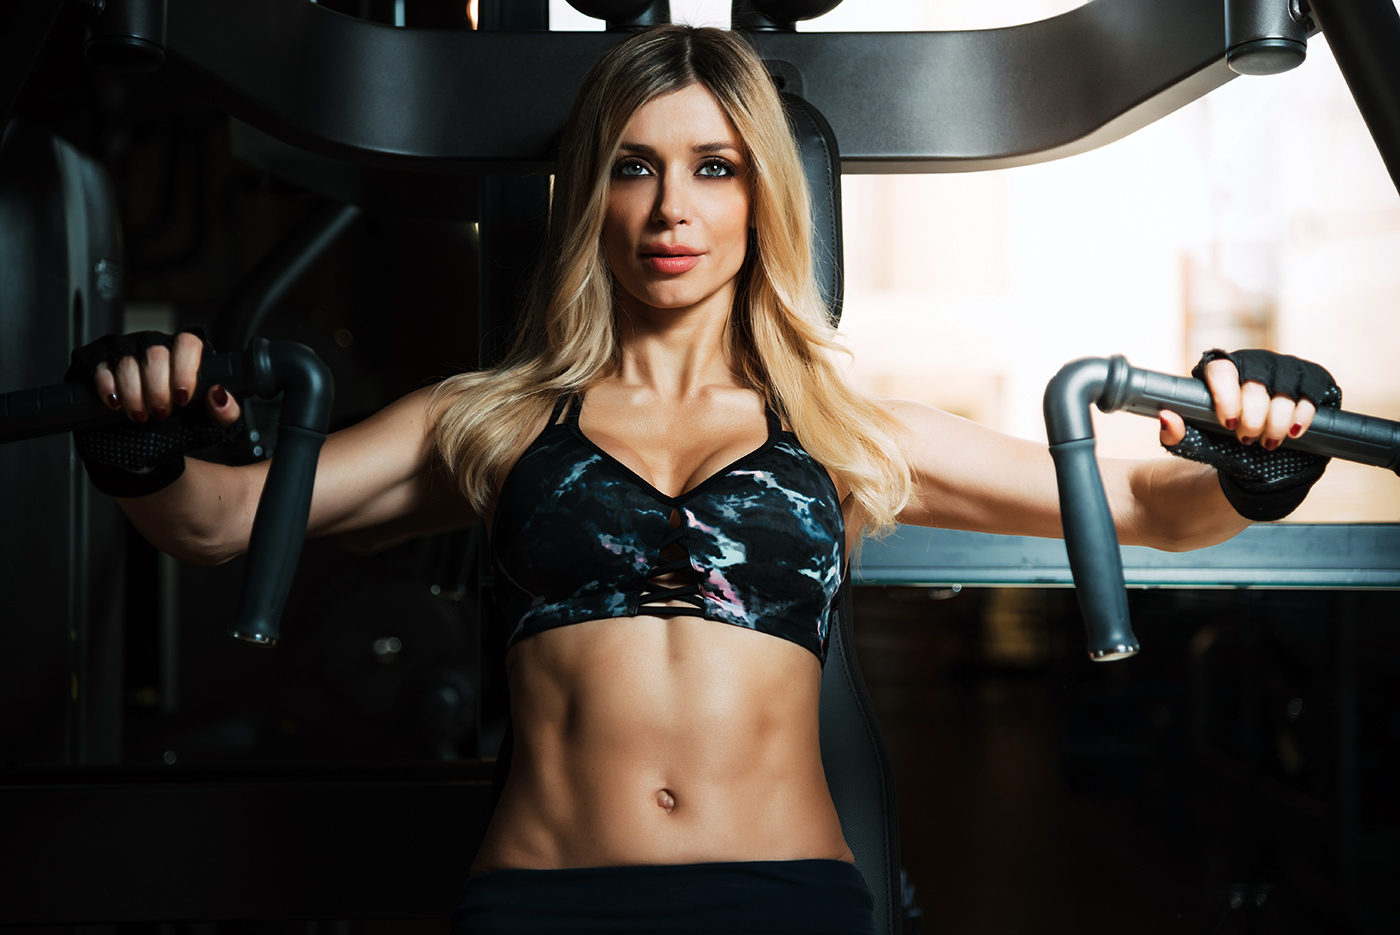 beautiful-blonde-woman-working-out-in-the-gym-7NZUAJM.jpg